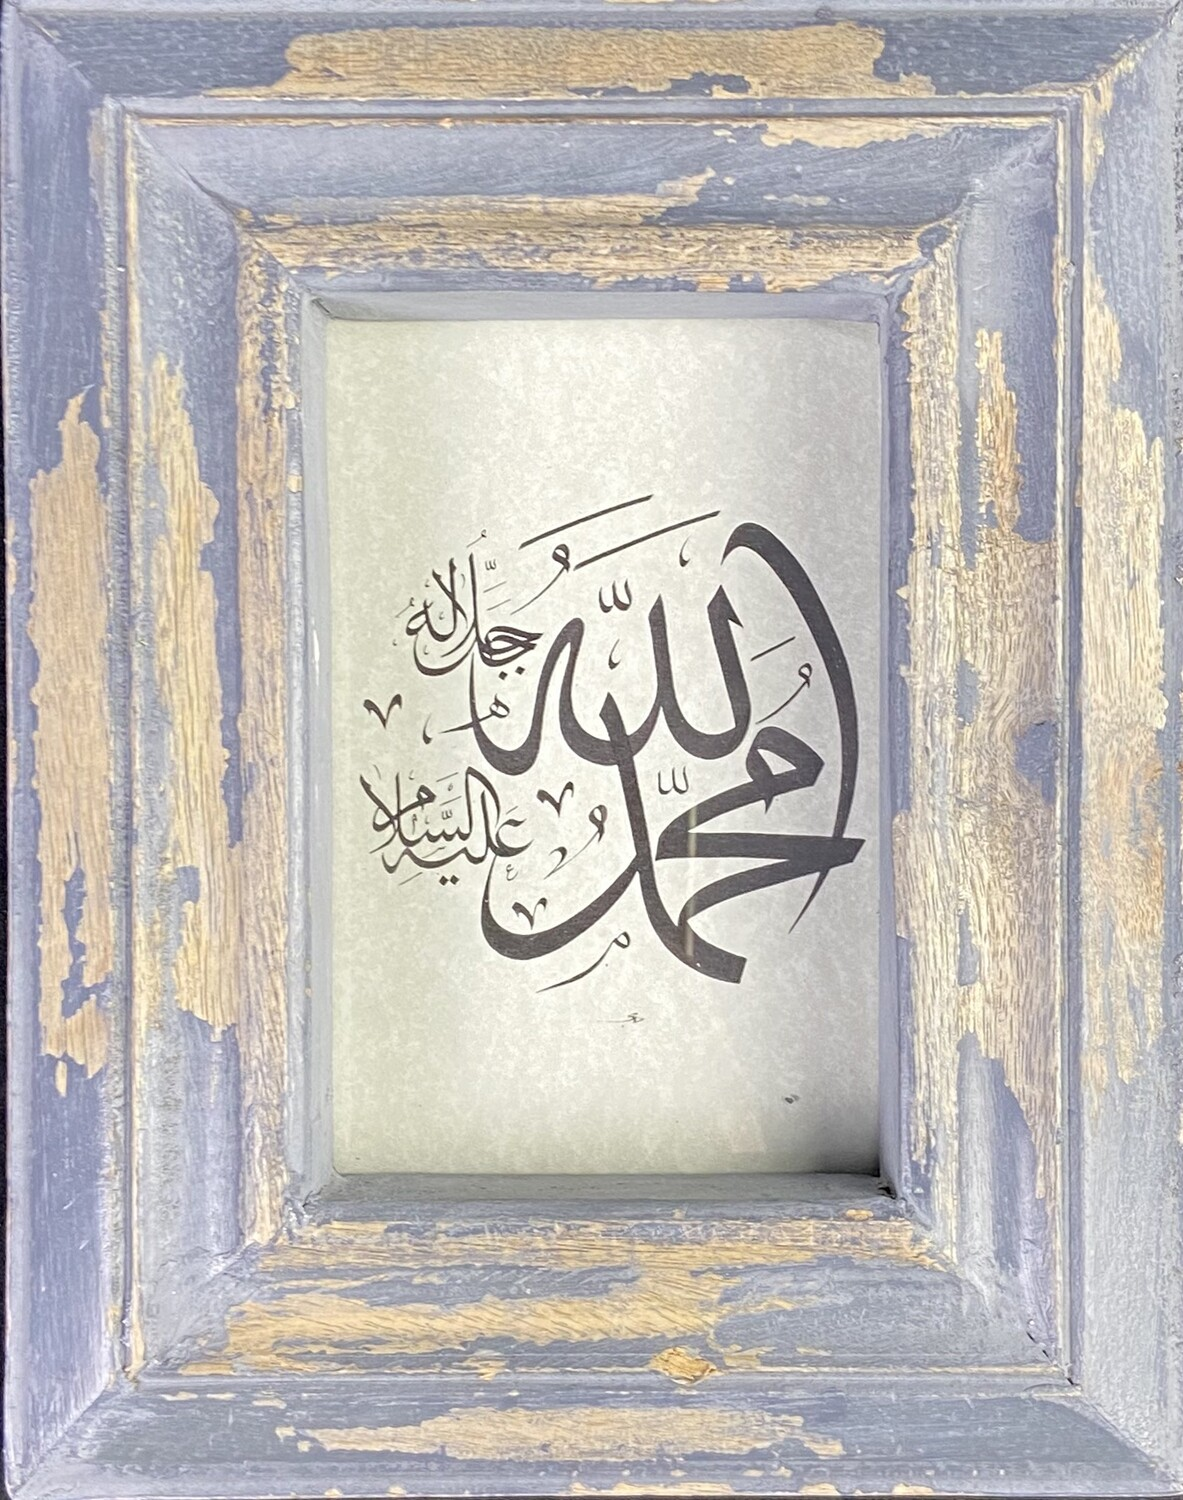 Allah & Mohammed on Grey Parchment in a Jade Distressed Wooden Frame